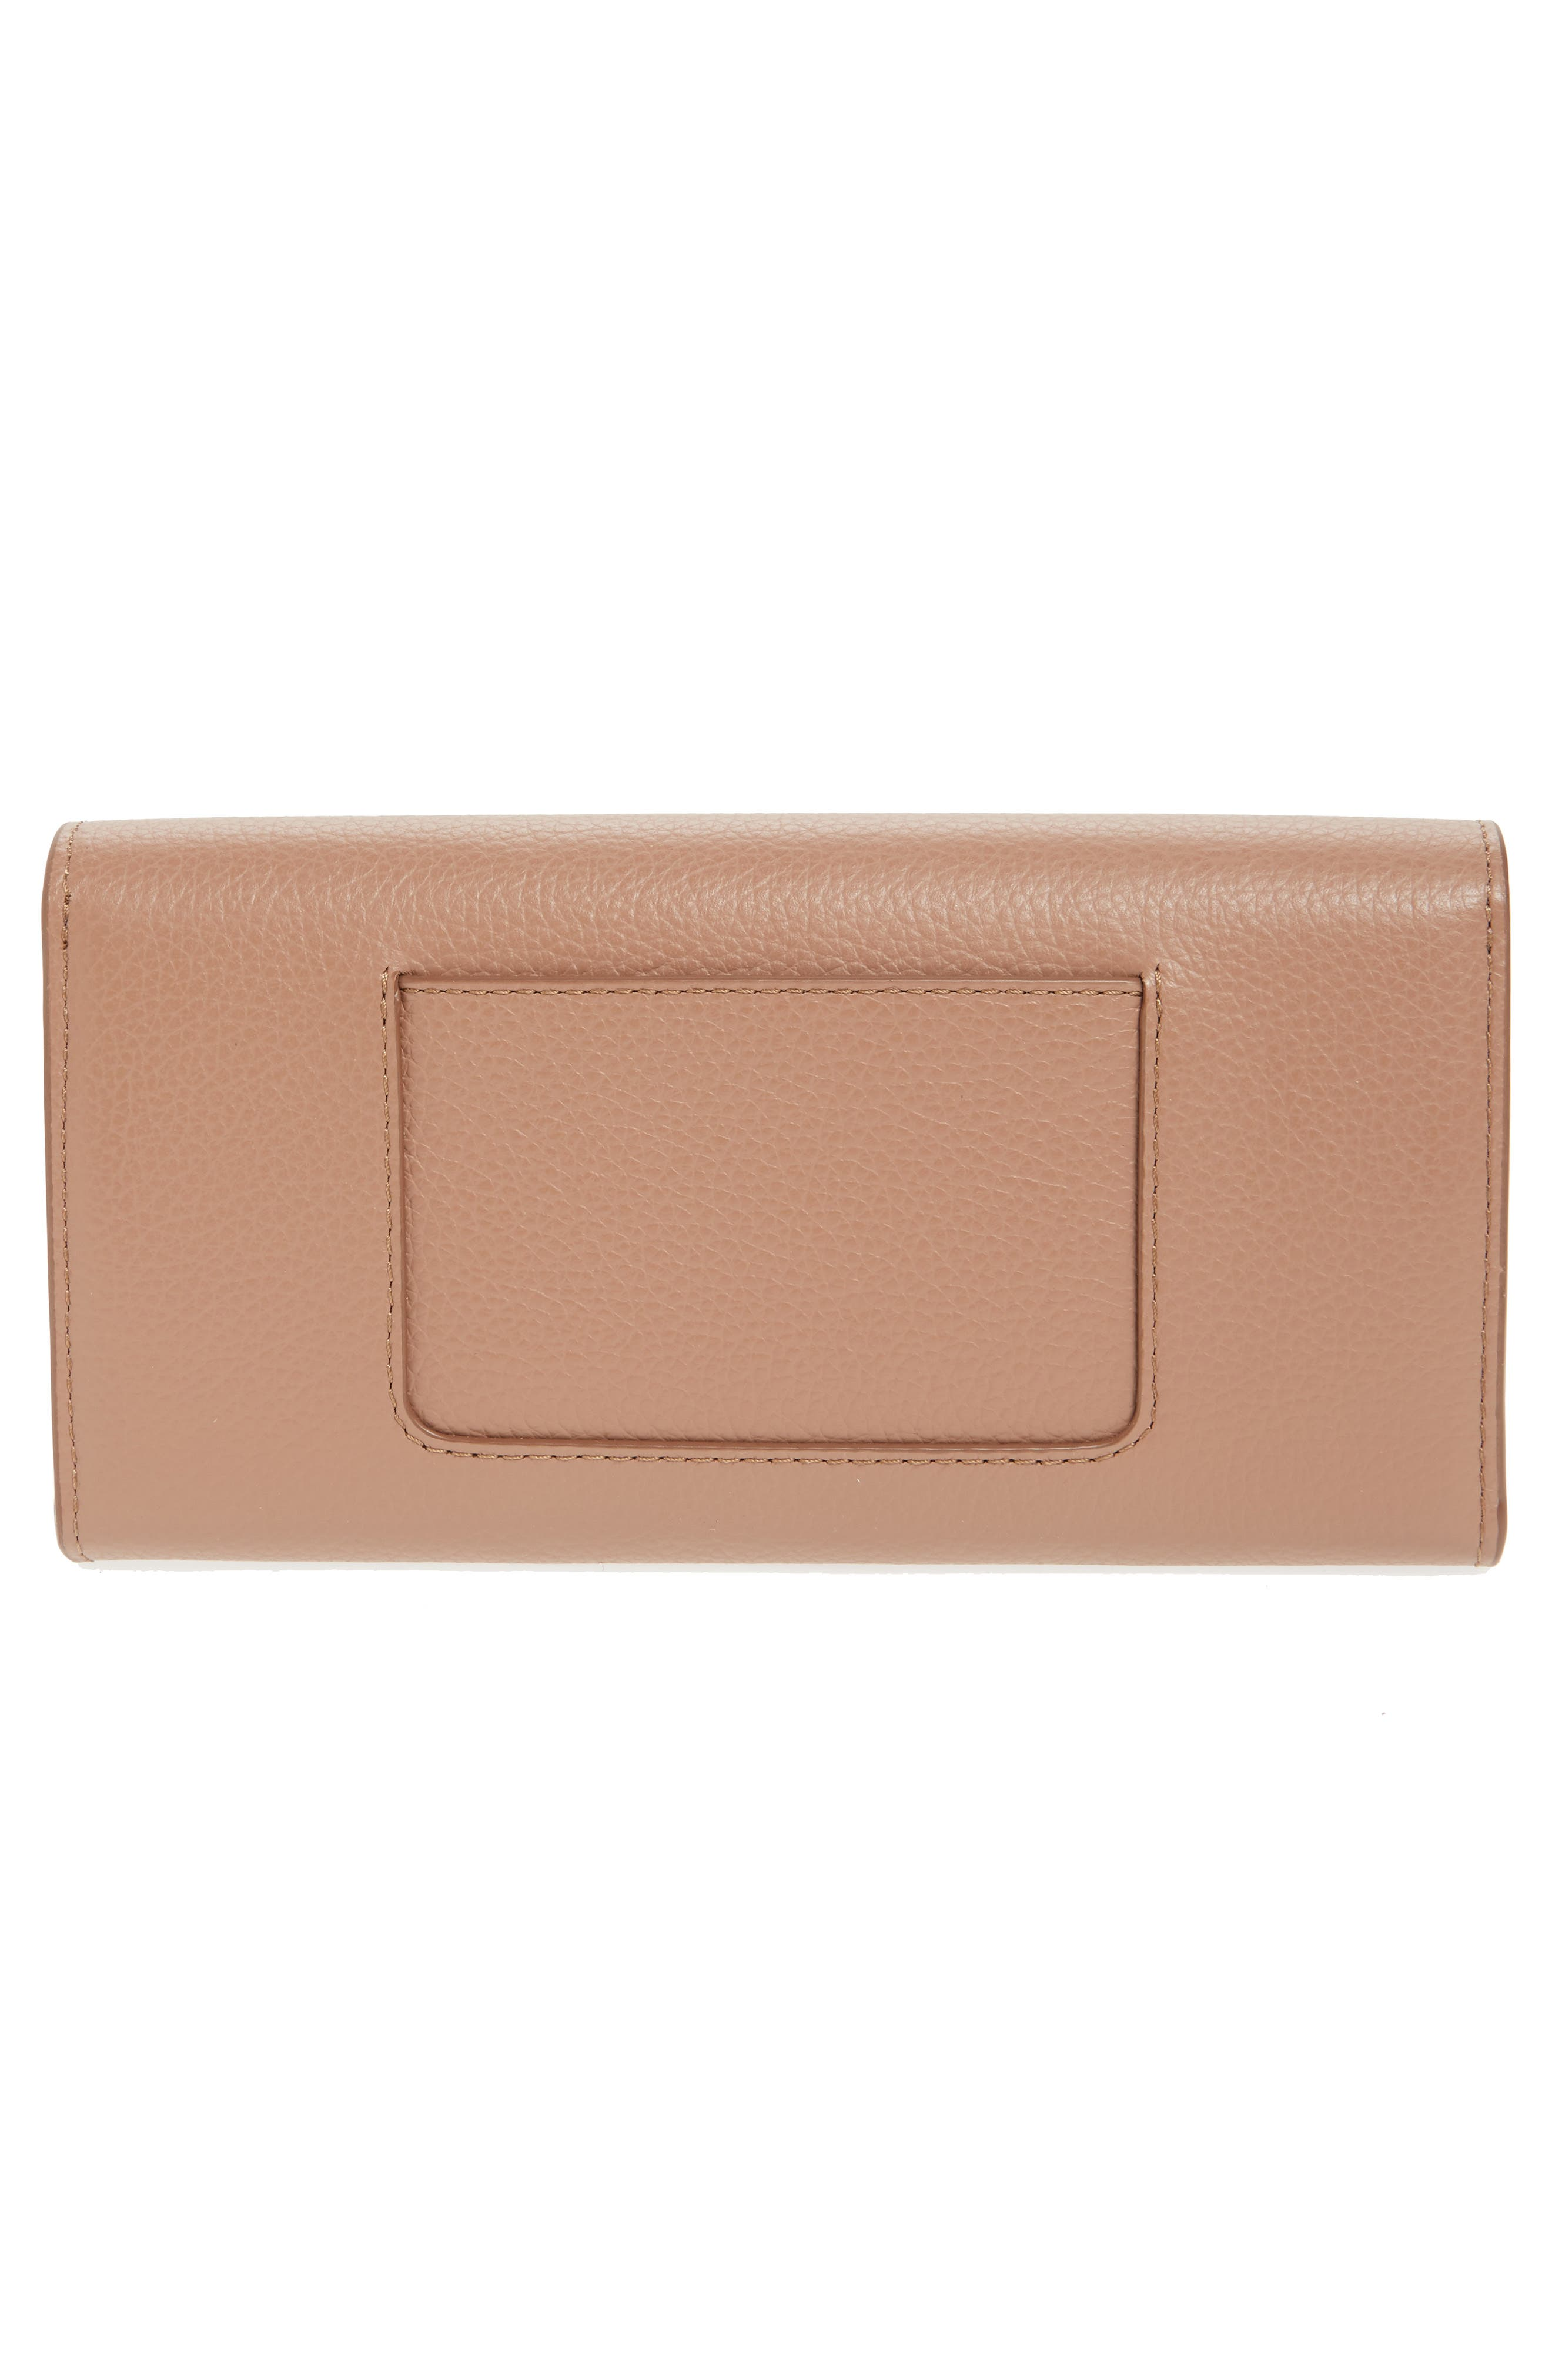 Alternate Image 3  - Mulberry Darley Continental Leather Wallet